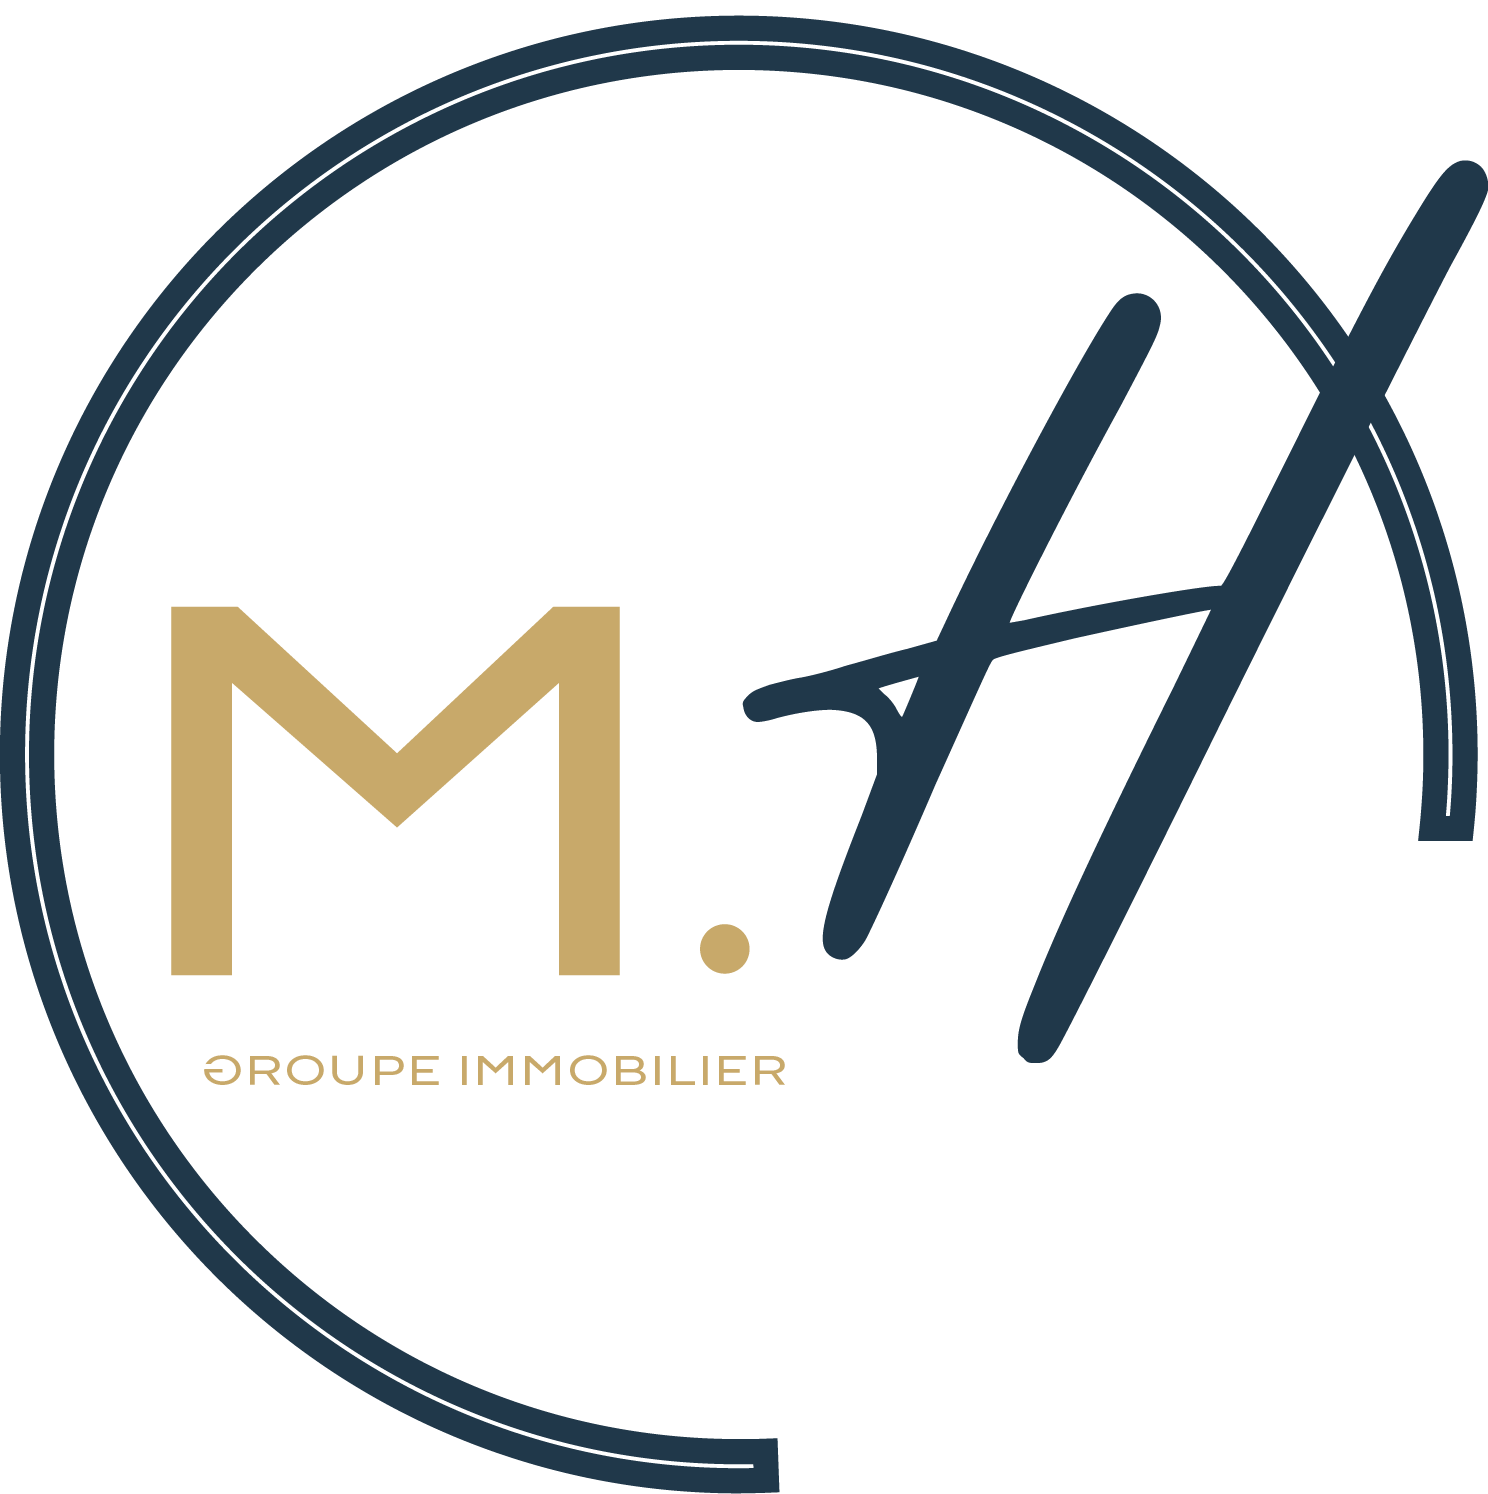 MH Immobilier